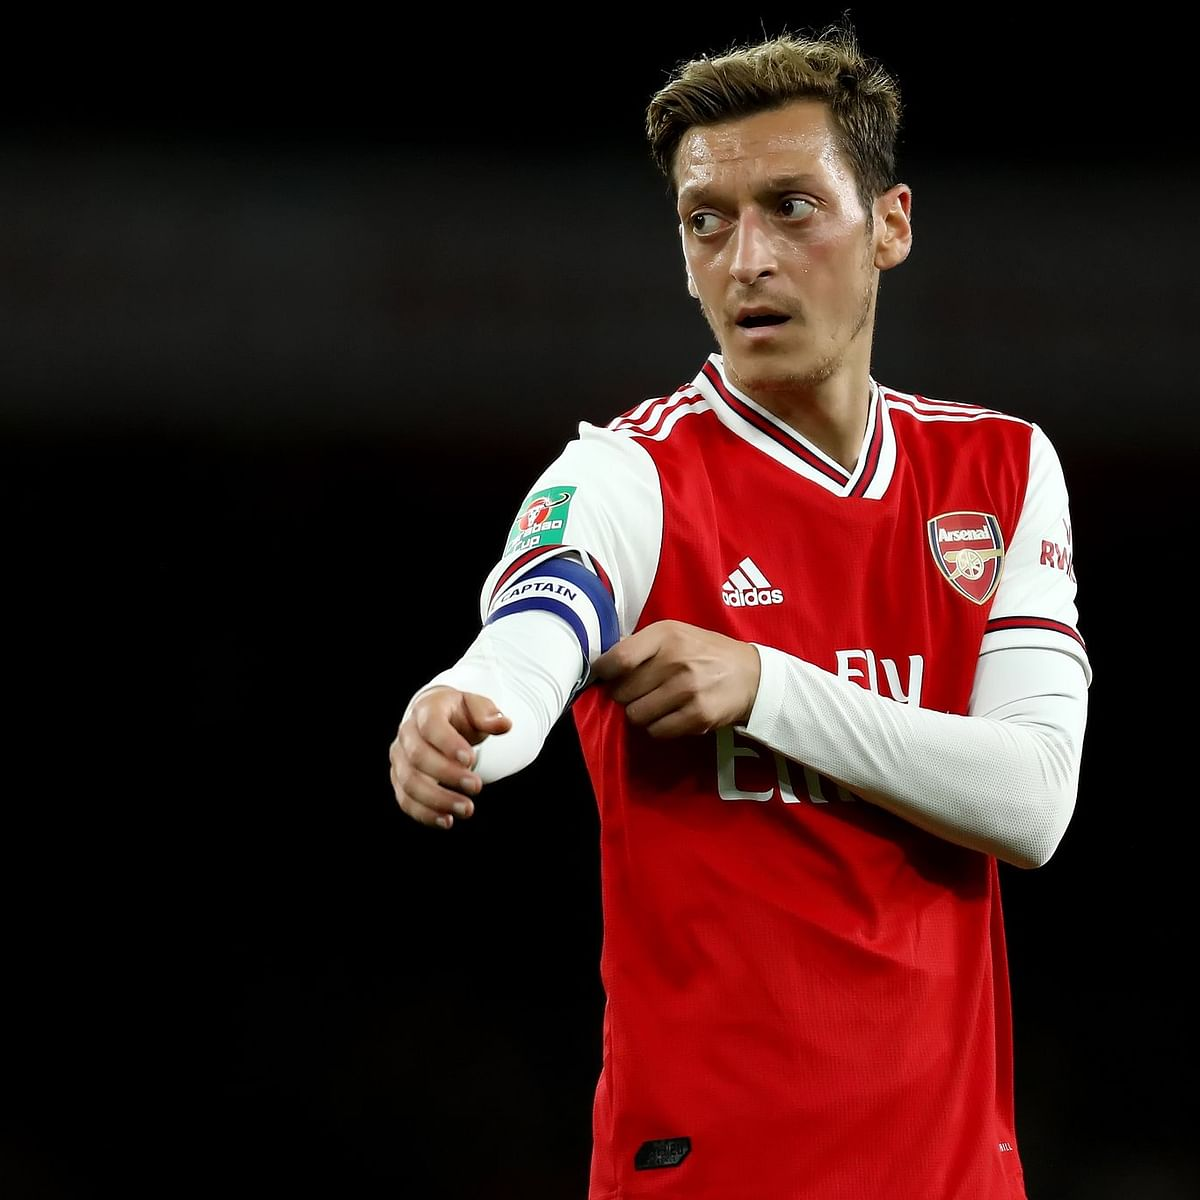 Mesut Ozil writes emotional note to Arsenal fans after being left out of Premier League squad